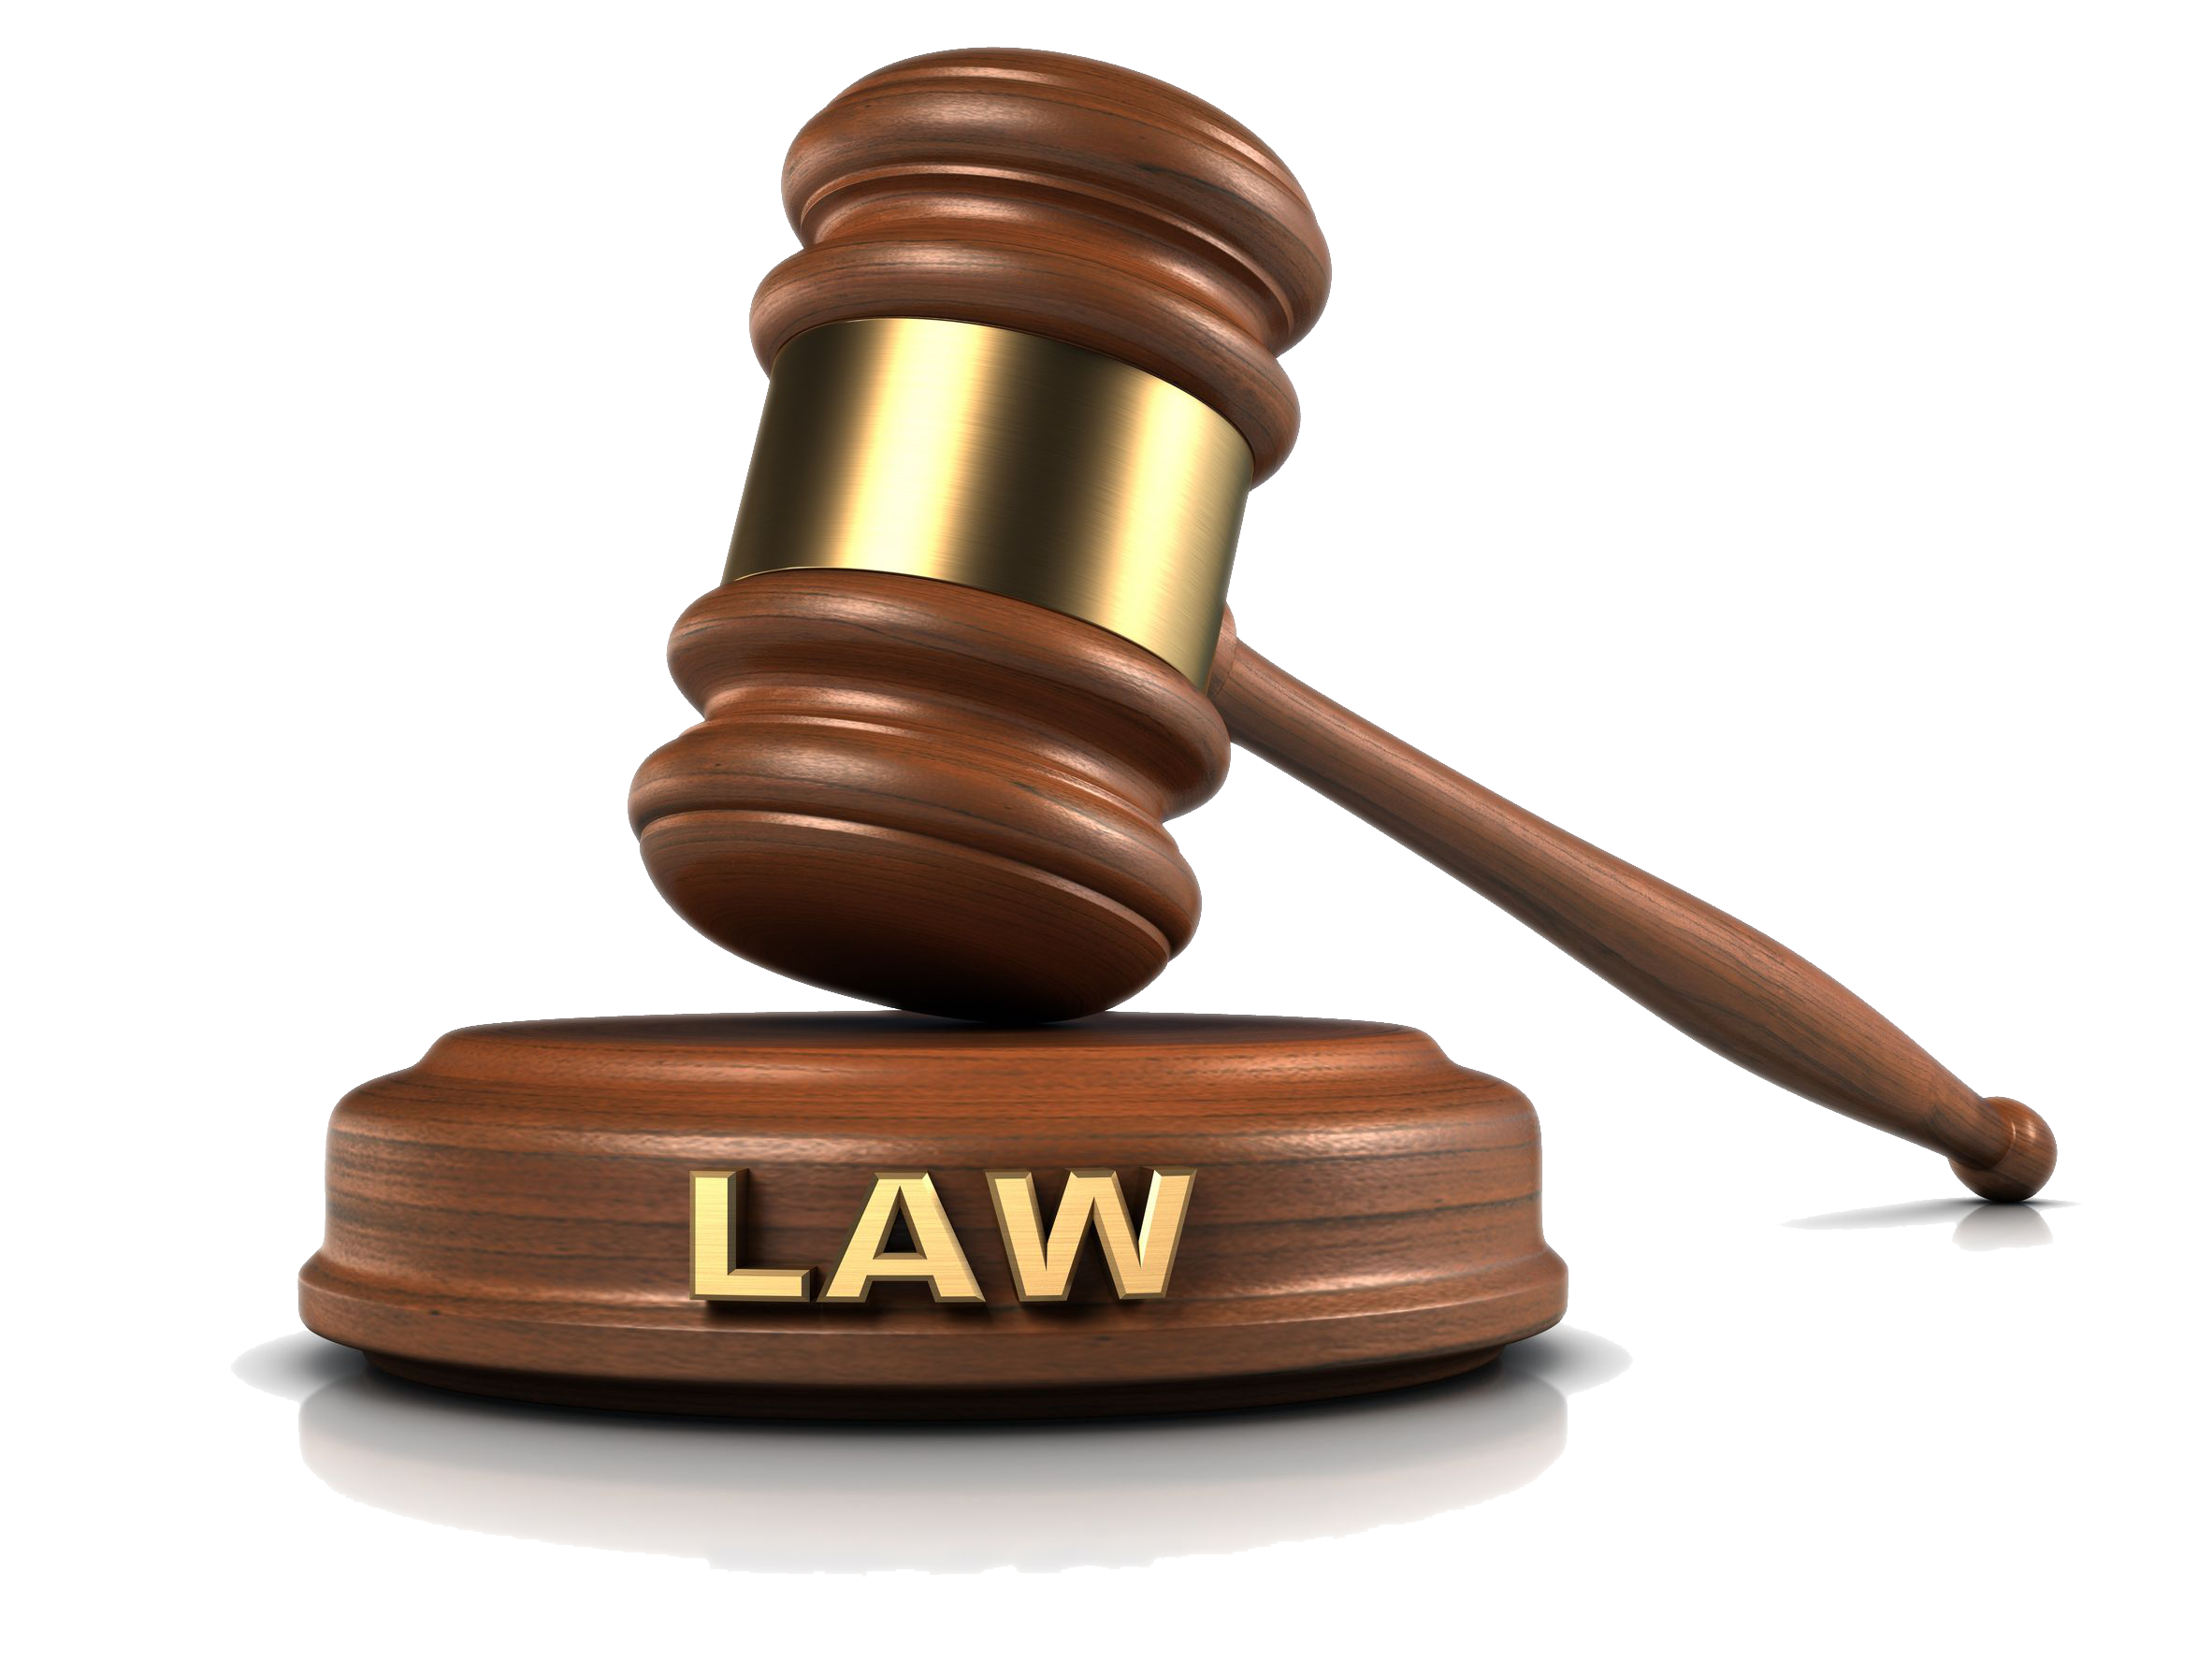 Court-Hammer-Free-PNG-Image